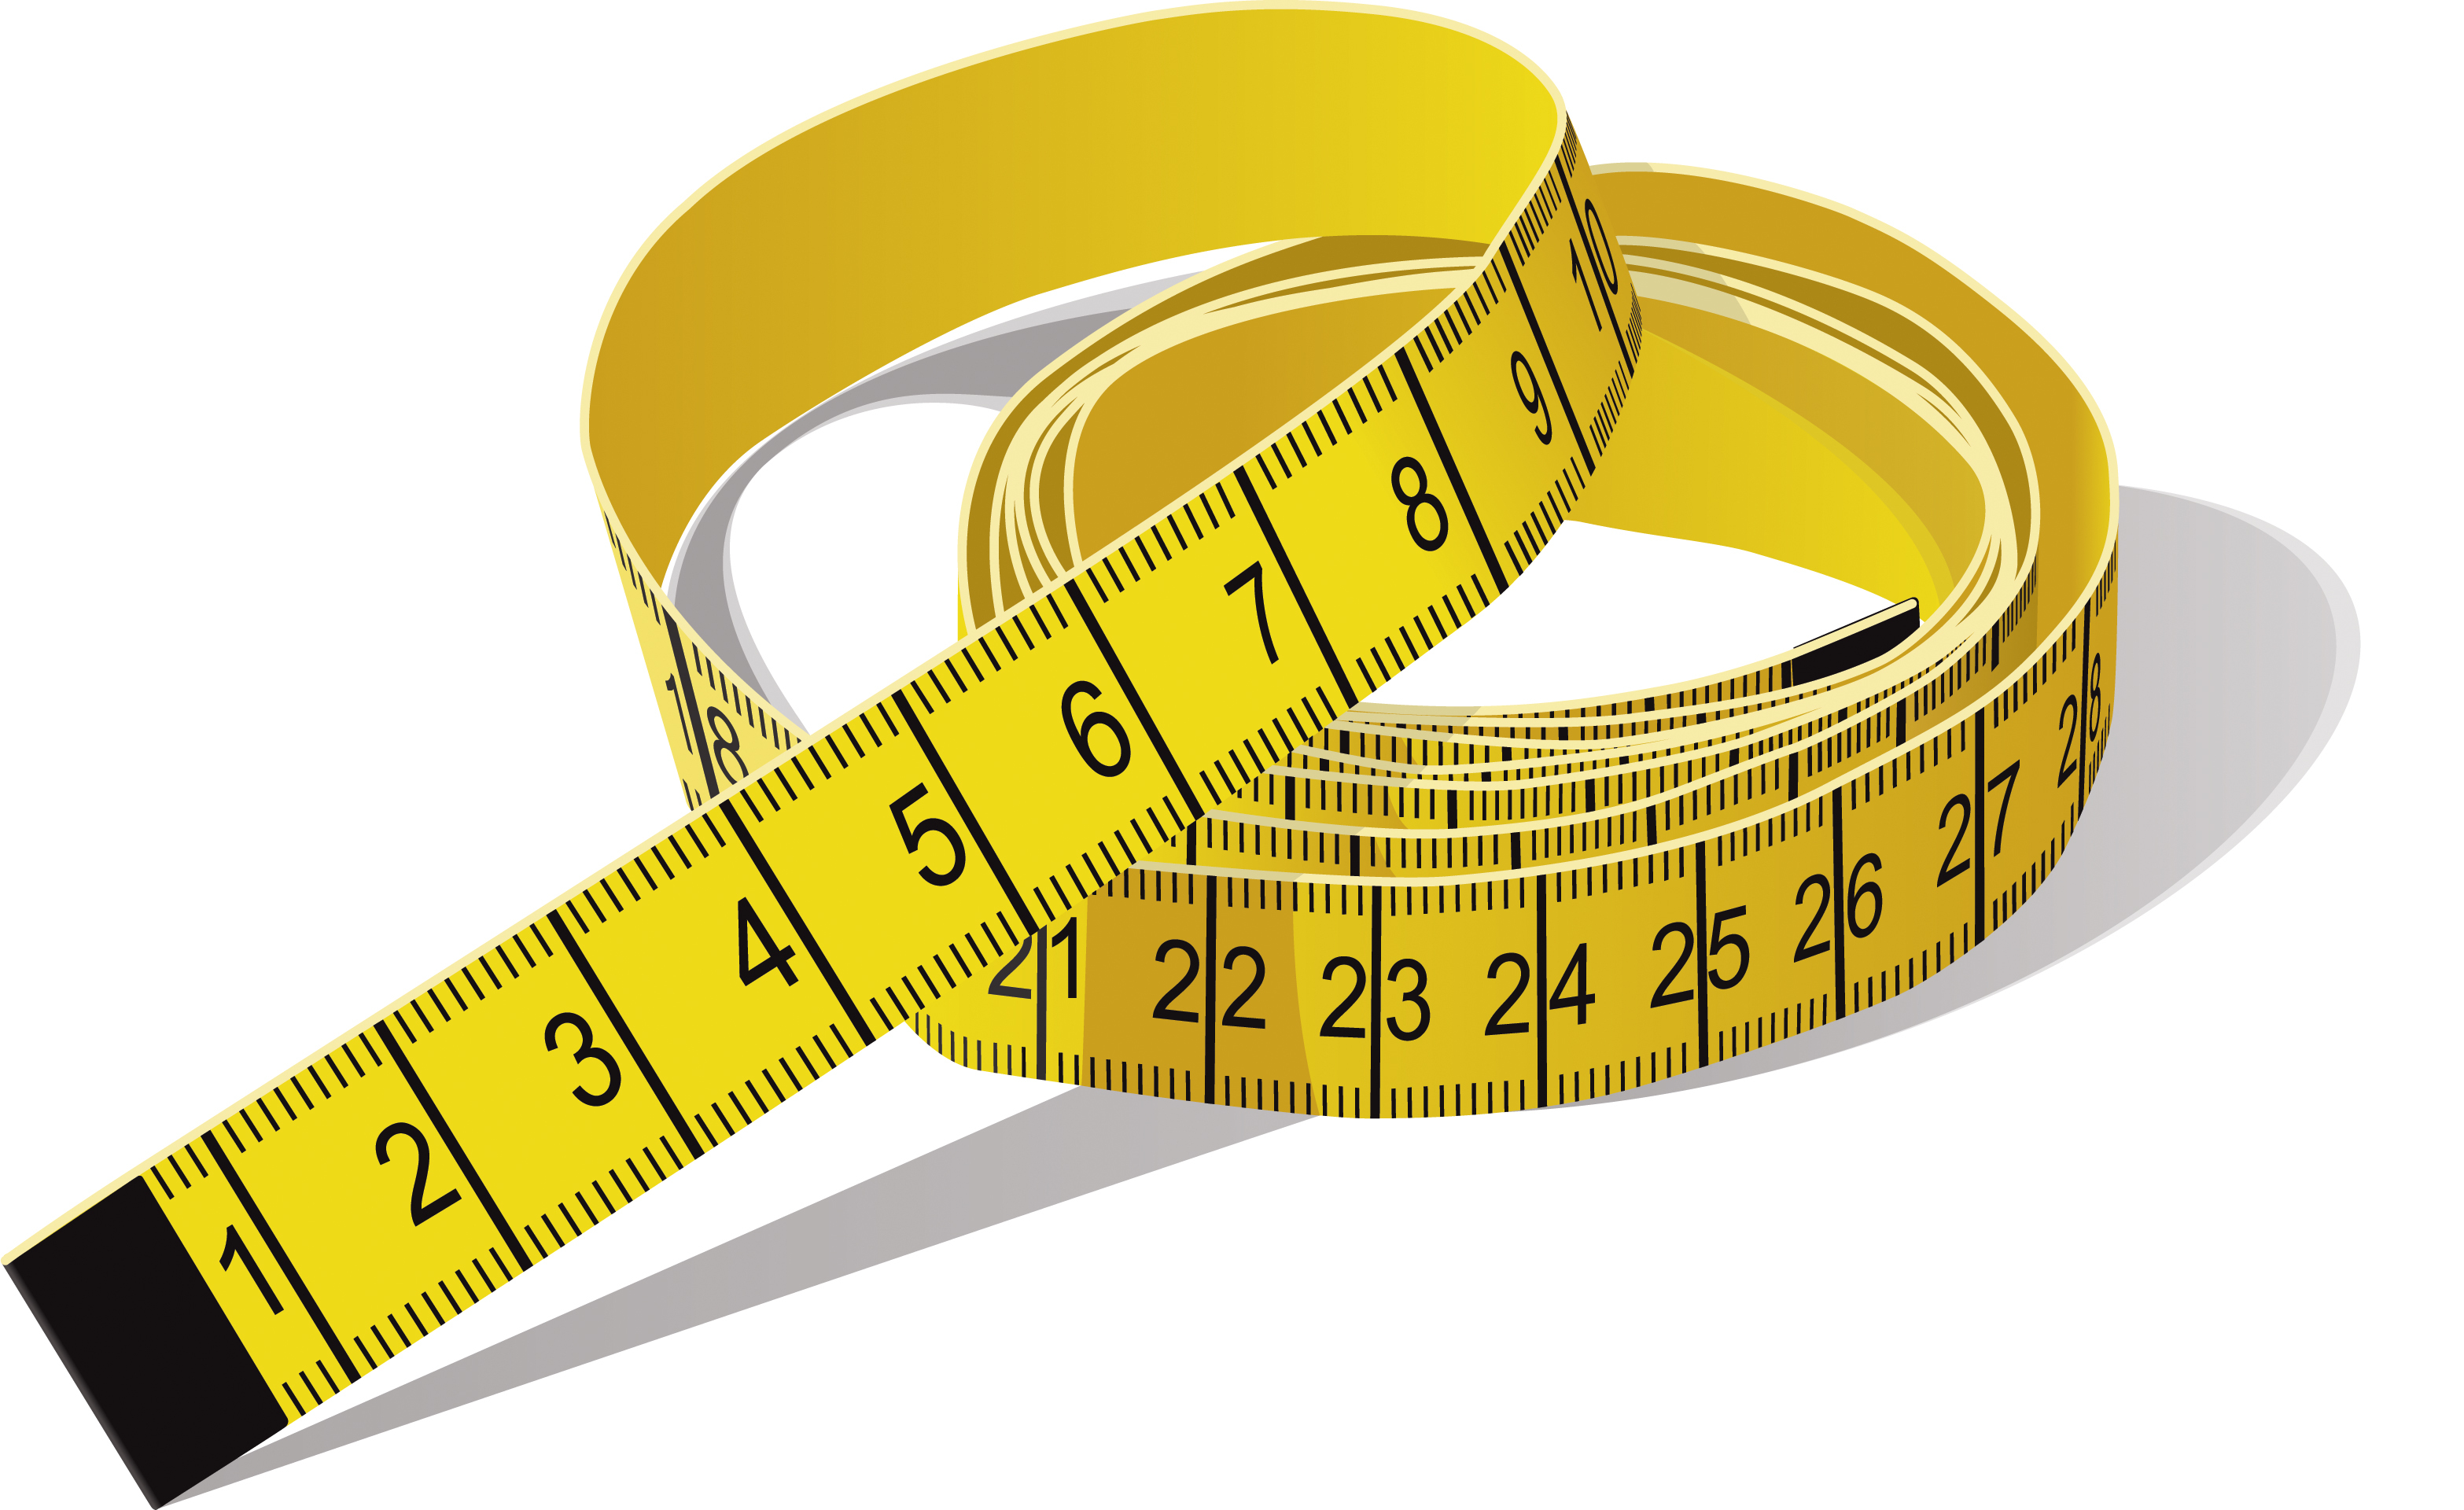 Body Tape Measure Png Hdpng.com 3133 - Body Tape Measure, Transparent background PNG HD thumbnail